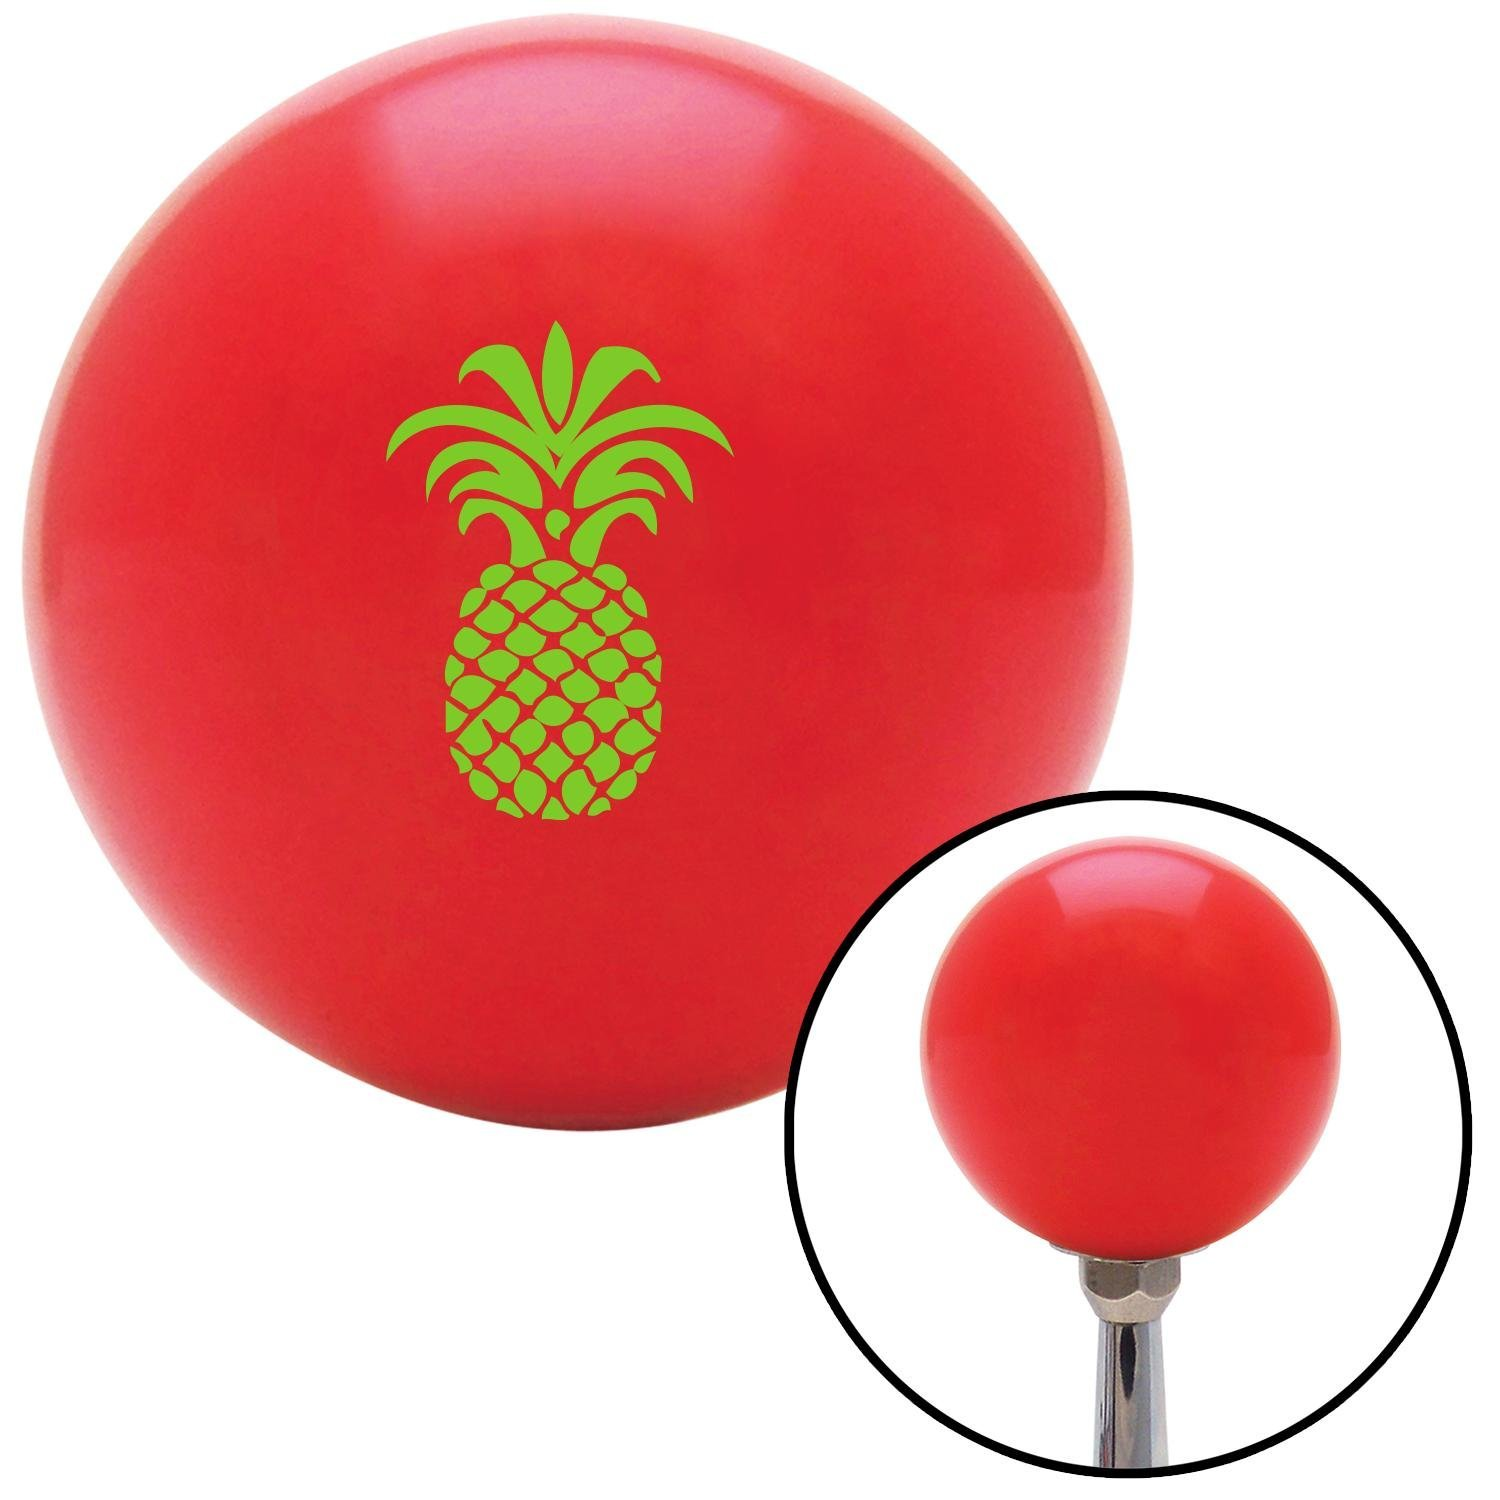 Green Pineapple American Shifter 95246 Red Shift Knob with M16 x 1.5 Insert